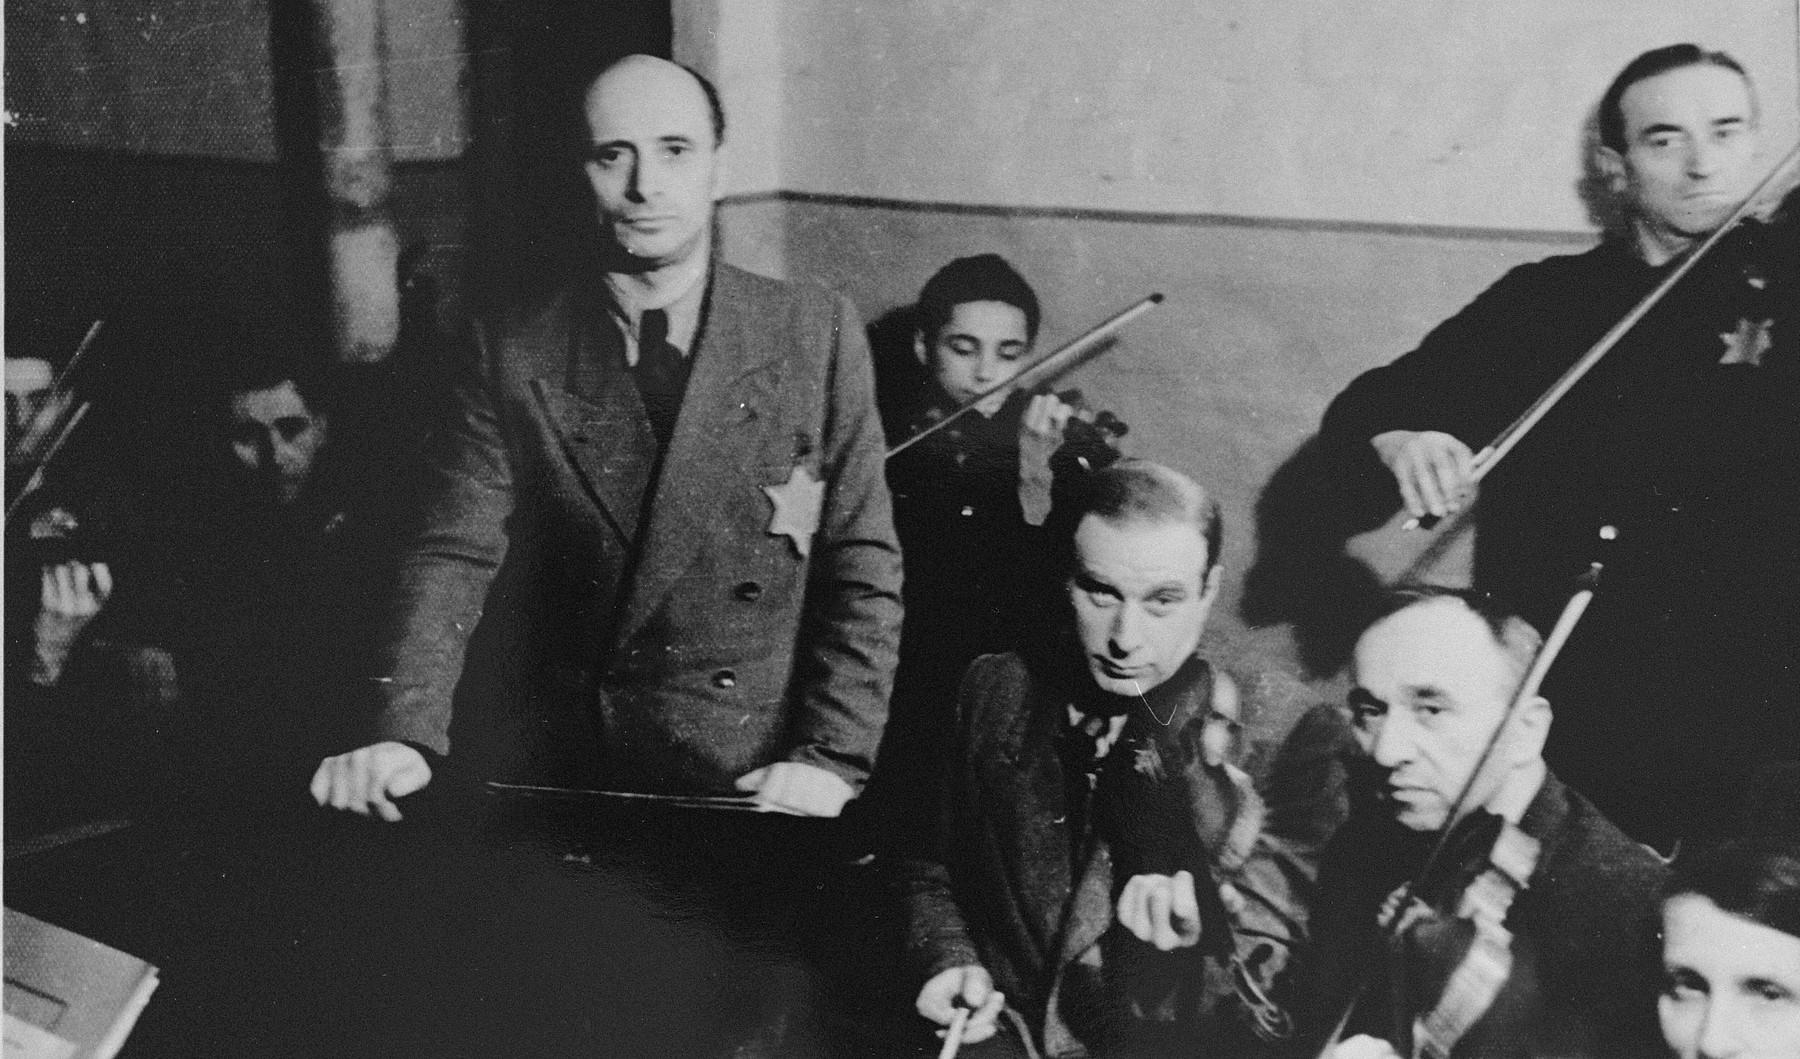 Performance of the Kovno ghetto orchestra.   Among those pictured are: Yankele (the 13-year-old youth playing the violin at the back), Michael Hofmekler (standing at the left), Boris Stupel (sitting next to Hofmekler), Alexander (Shmaya) Stupel (standing at the top right).  Boris Stupel survived Dachau and later immigrated to Australia.  His brother, Alexander, perished in Dachau.